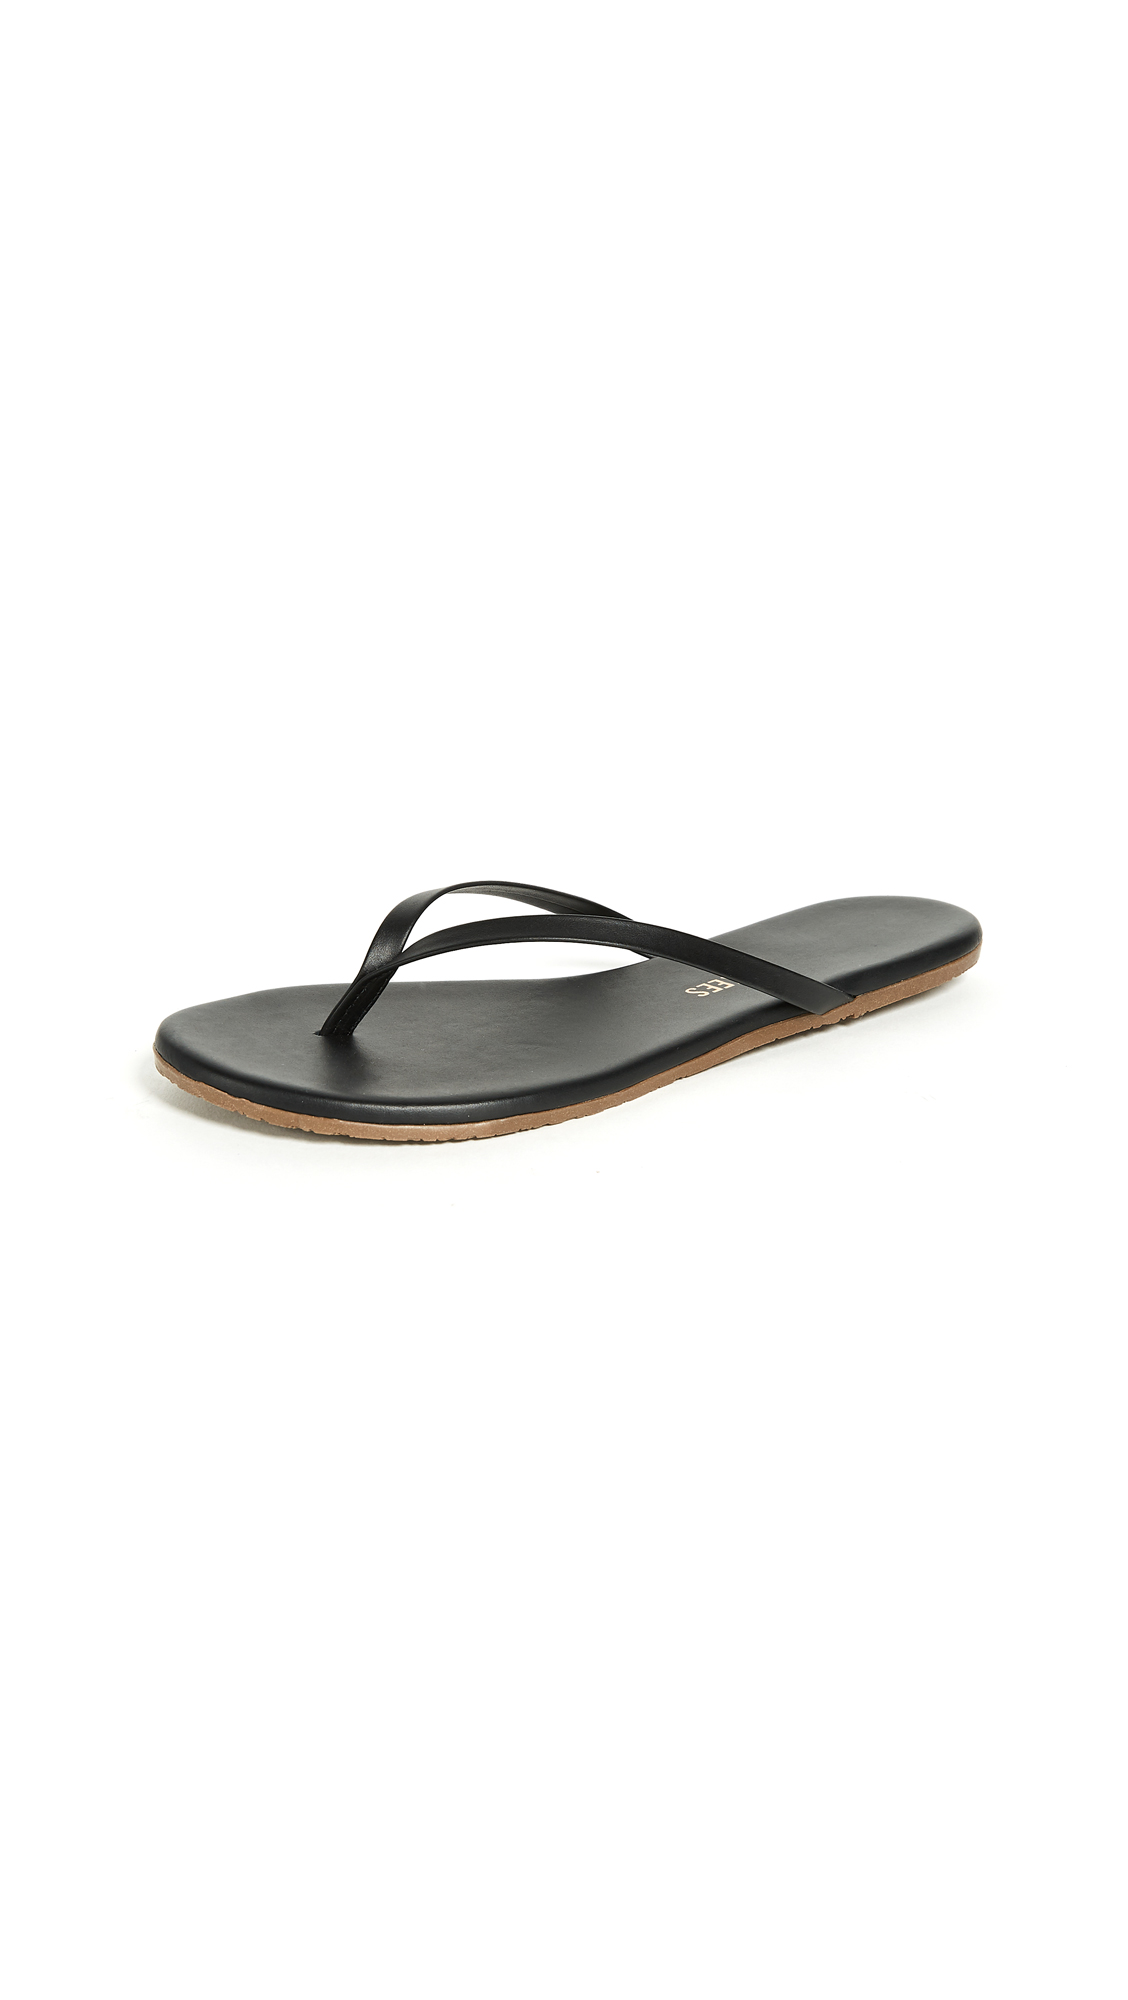 TKEES Liners Flip Flop - Sable